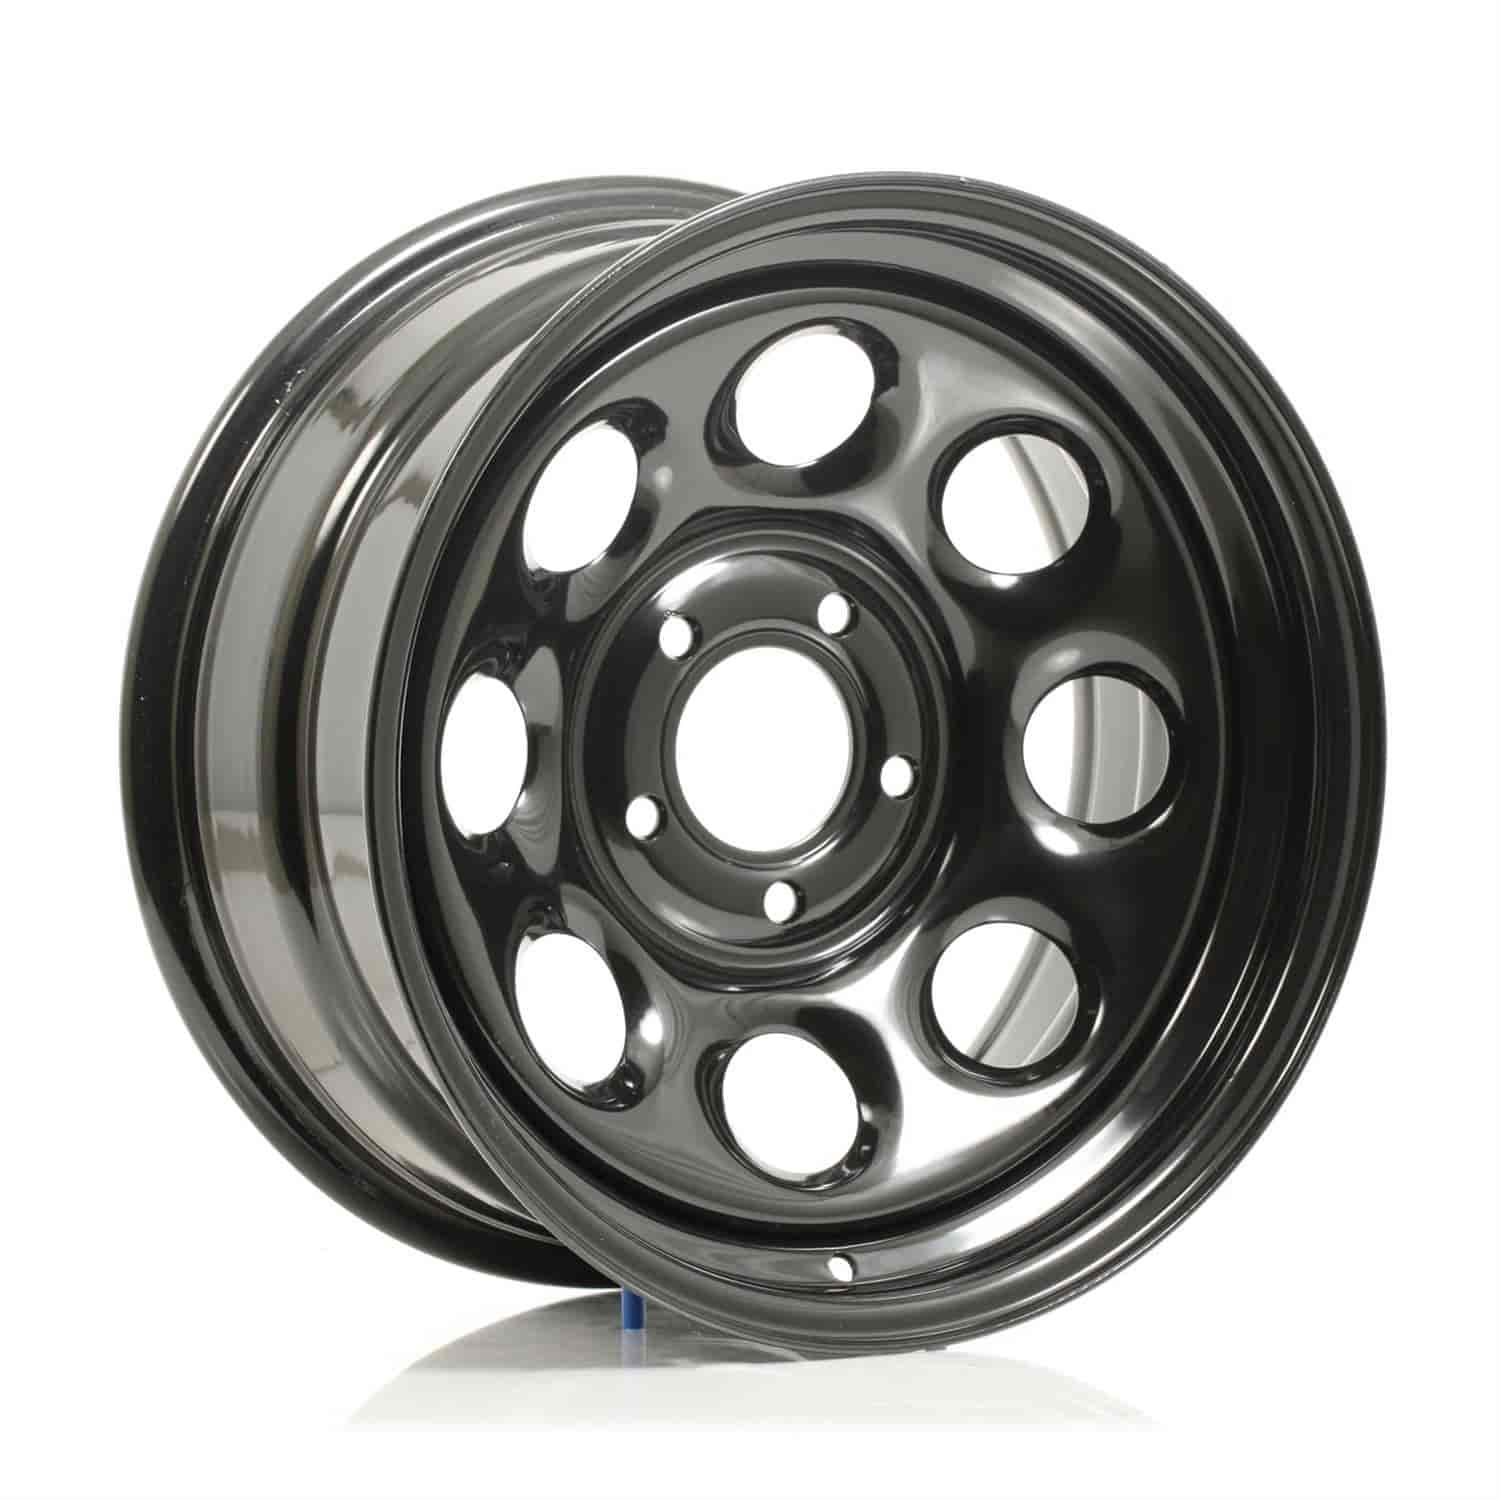 Cragar 3978835 - Cragar Black Soft 8 Wheels